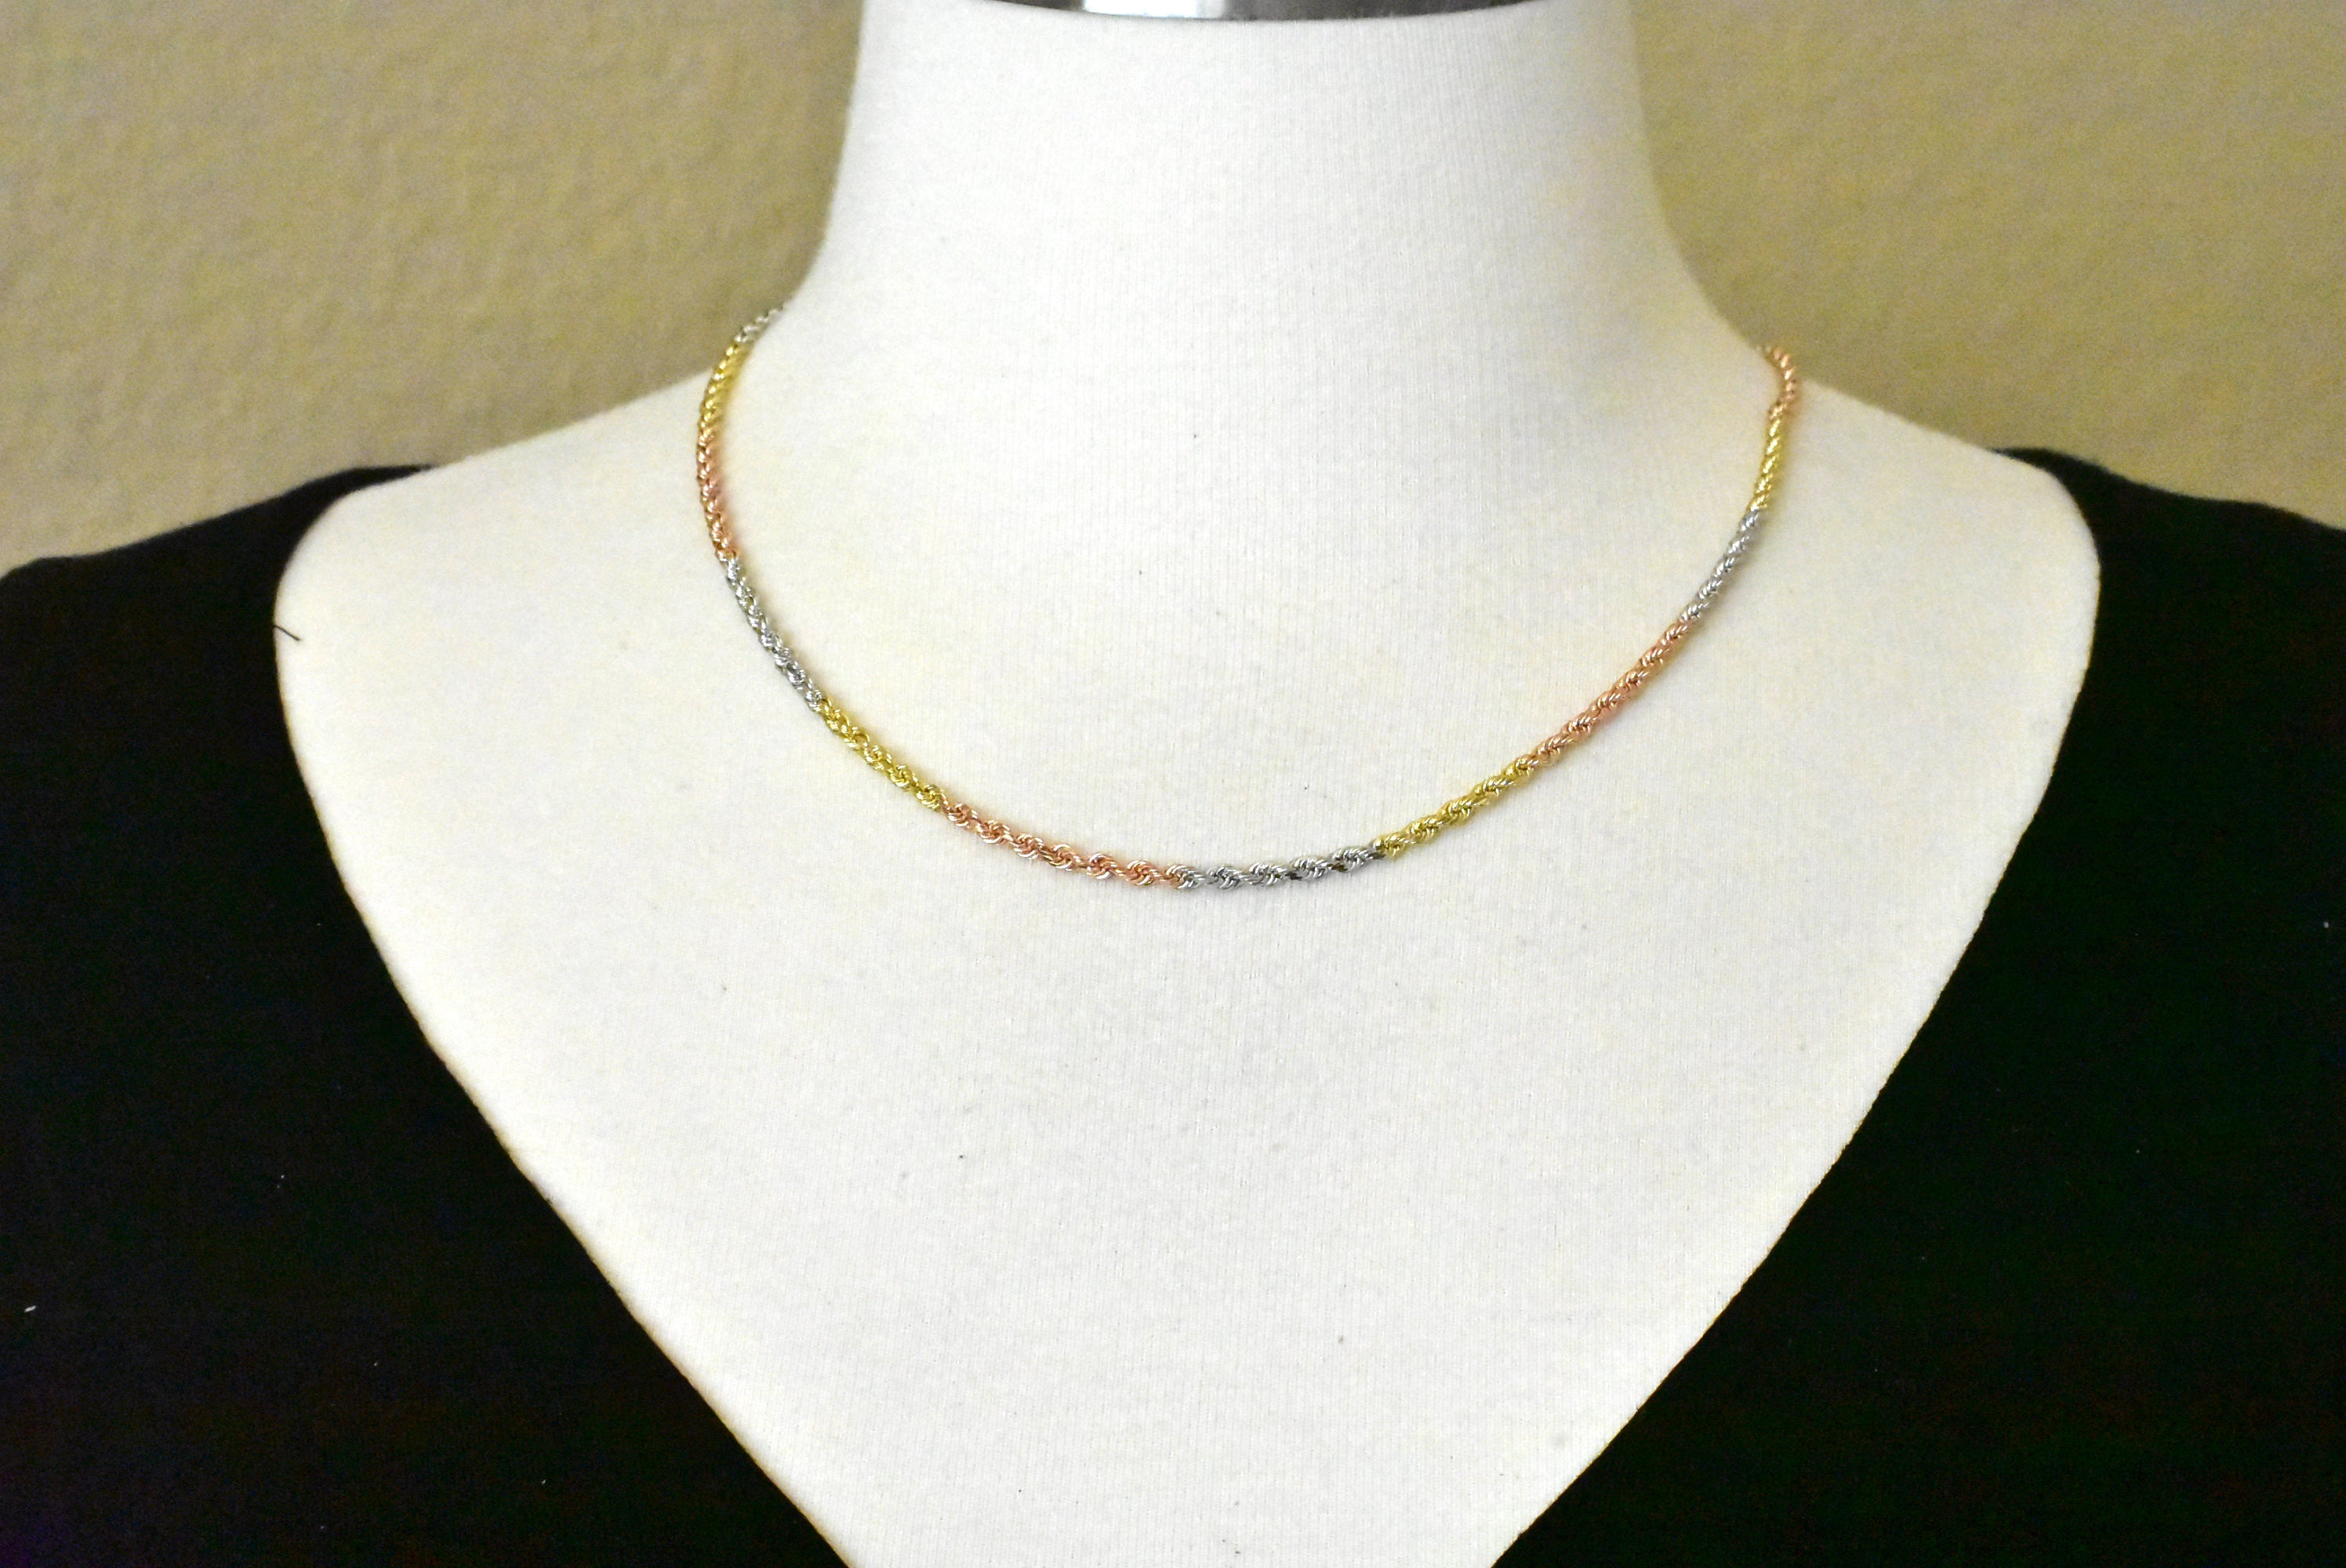 14K Yellow White Rose Gold Tri Color 3mm Diamond Cut Rope Bracelet Anklet Choker Necklace Chain